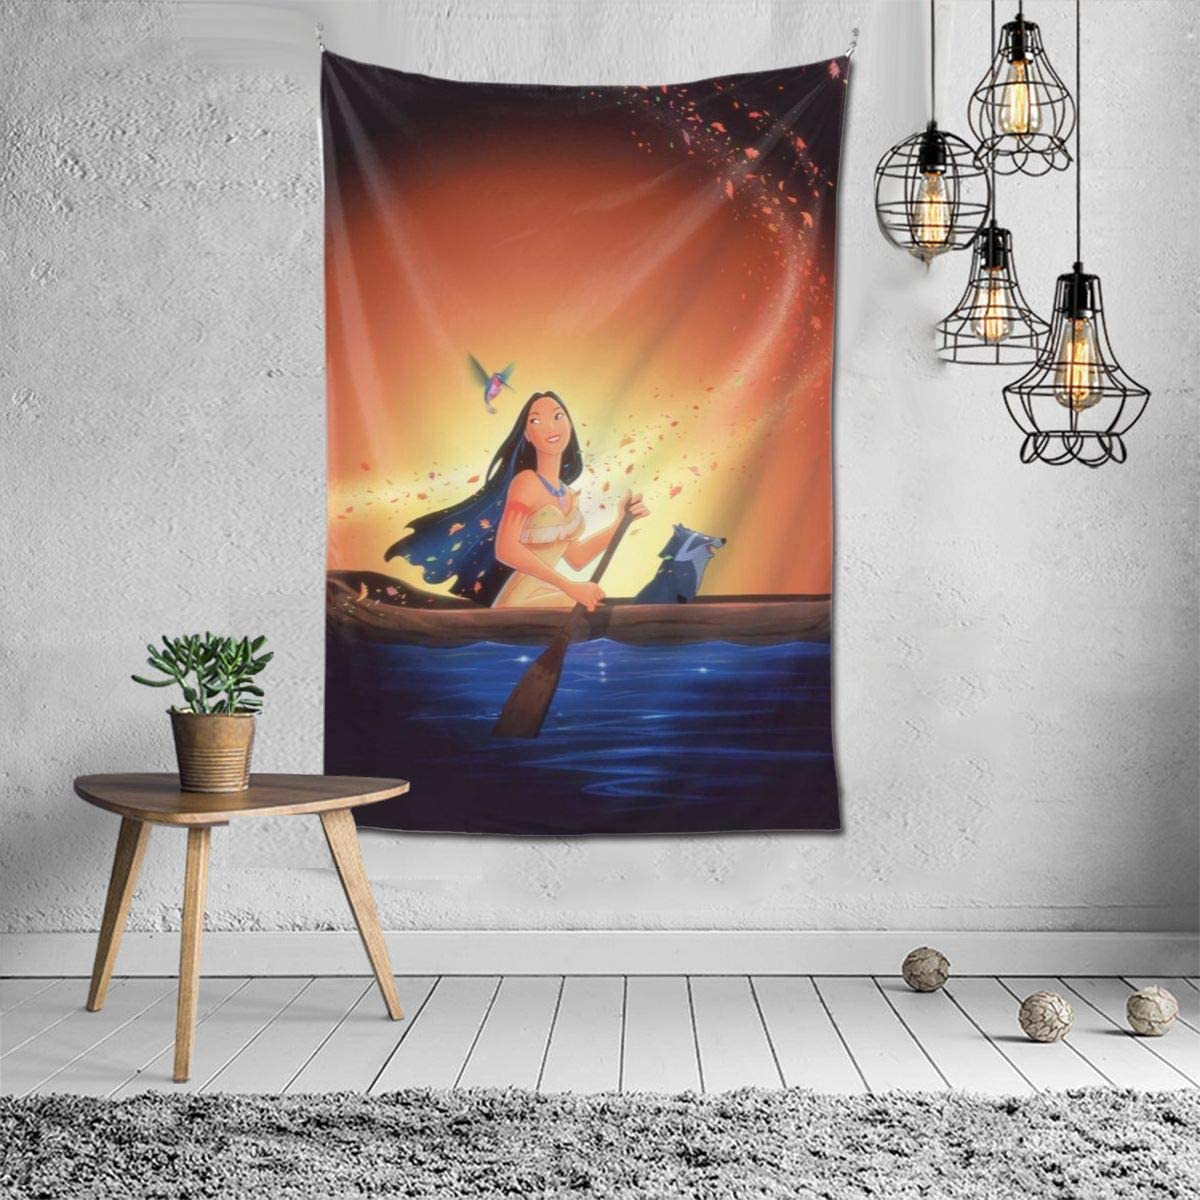 Colorful Wind Poc-Aho-Ntas Tapestry Wall Hanging Tapestry for Living Room Bedroom Dorm Decor 60 X 40 Inch Wall Blanket Tapestry Indoor Tapestries,Black,One Size